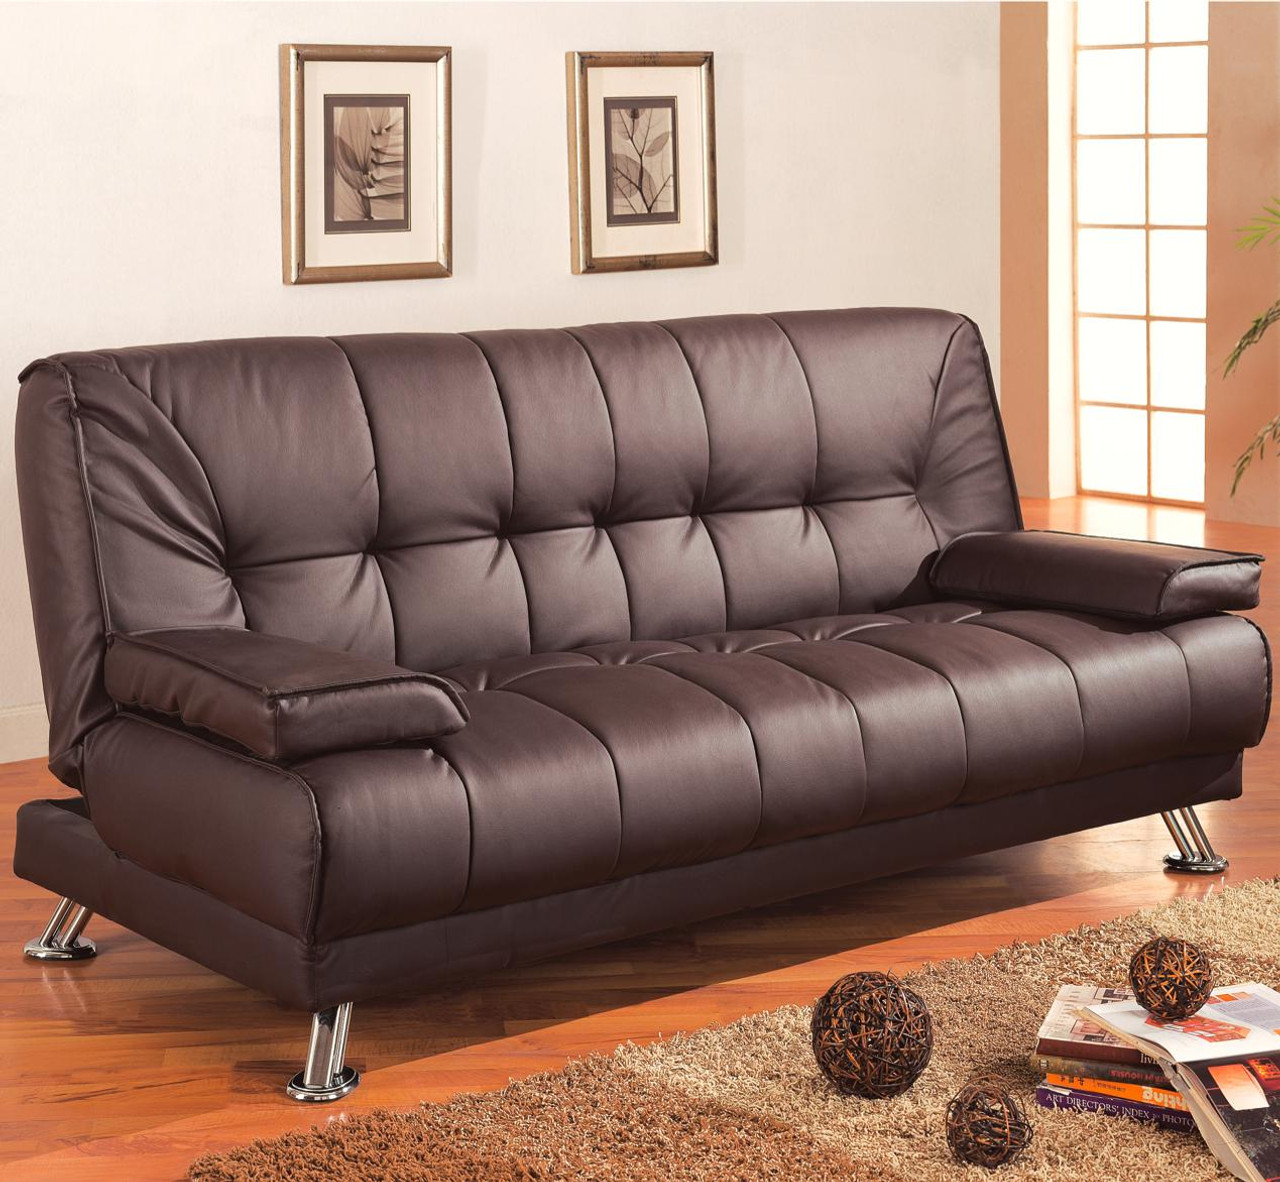 new product 8d054 4aaee Coaster Braxton Convertible Sofa Bed in Brown Faux Leather